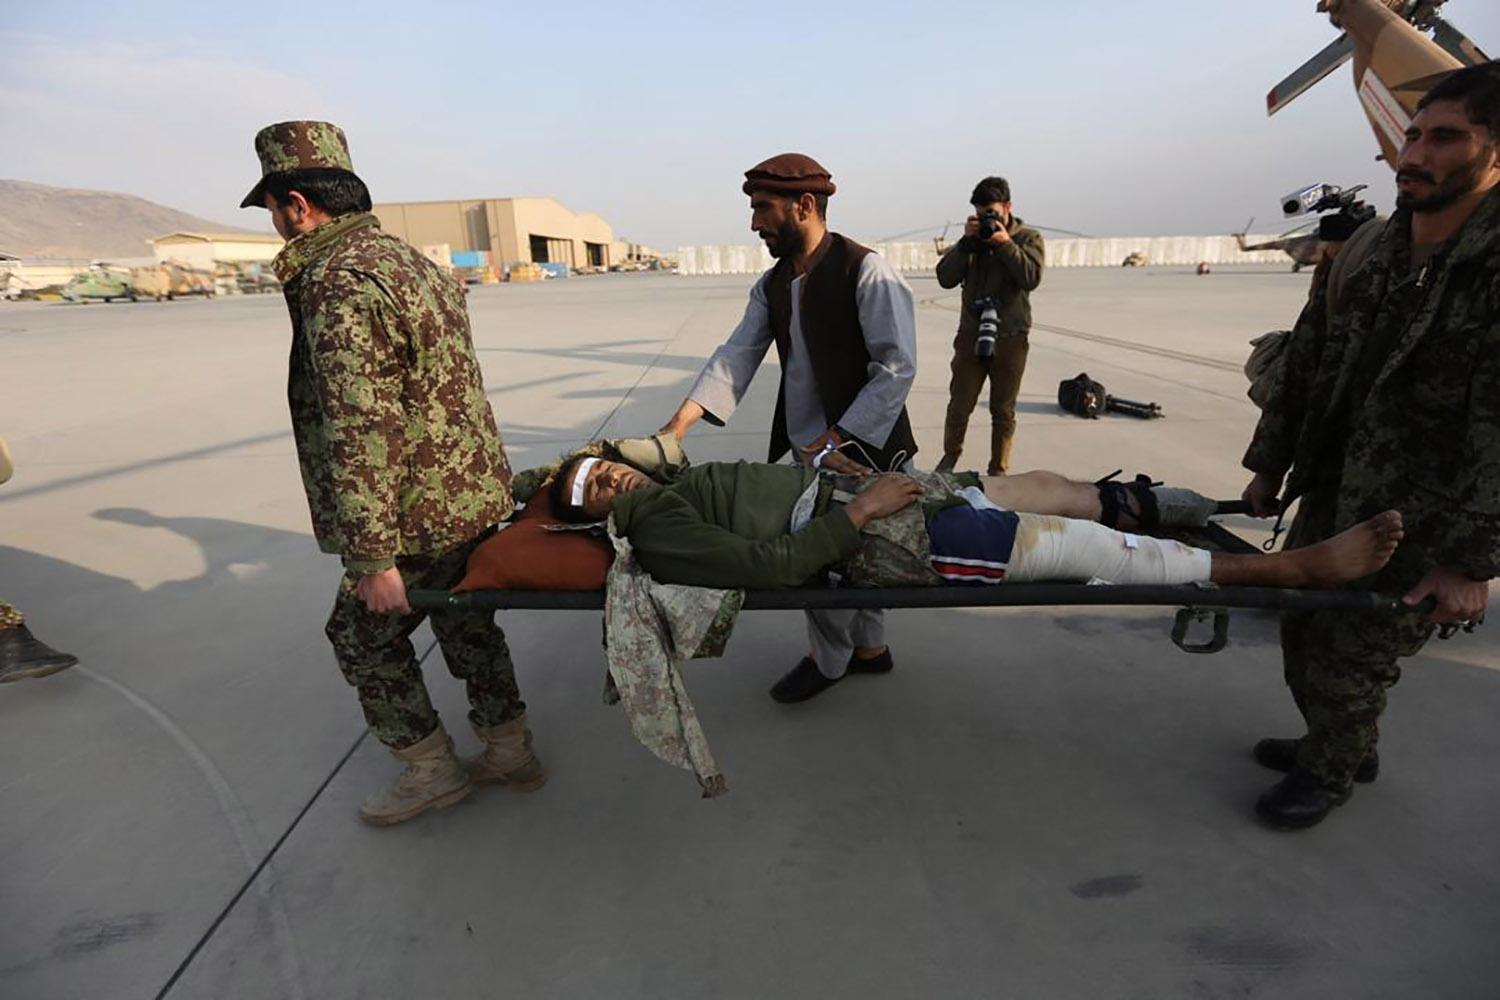 Jalali, background, photographs the evacuation of soldiers wounded in the battlefield in Kabul in an archival photo.